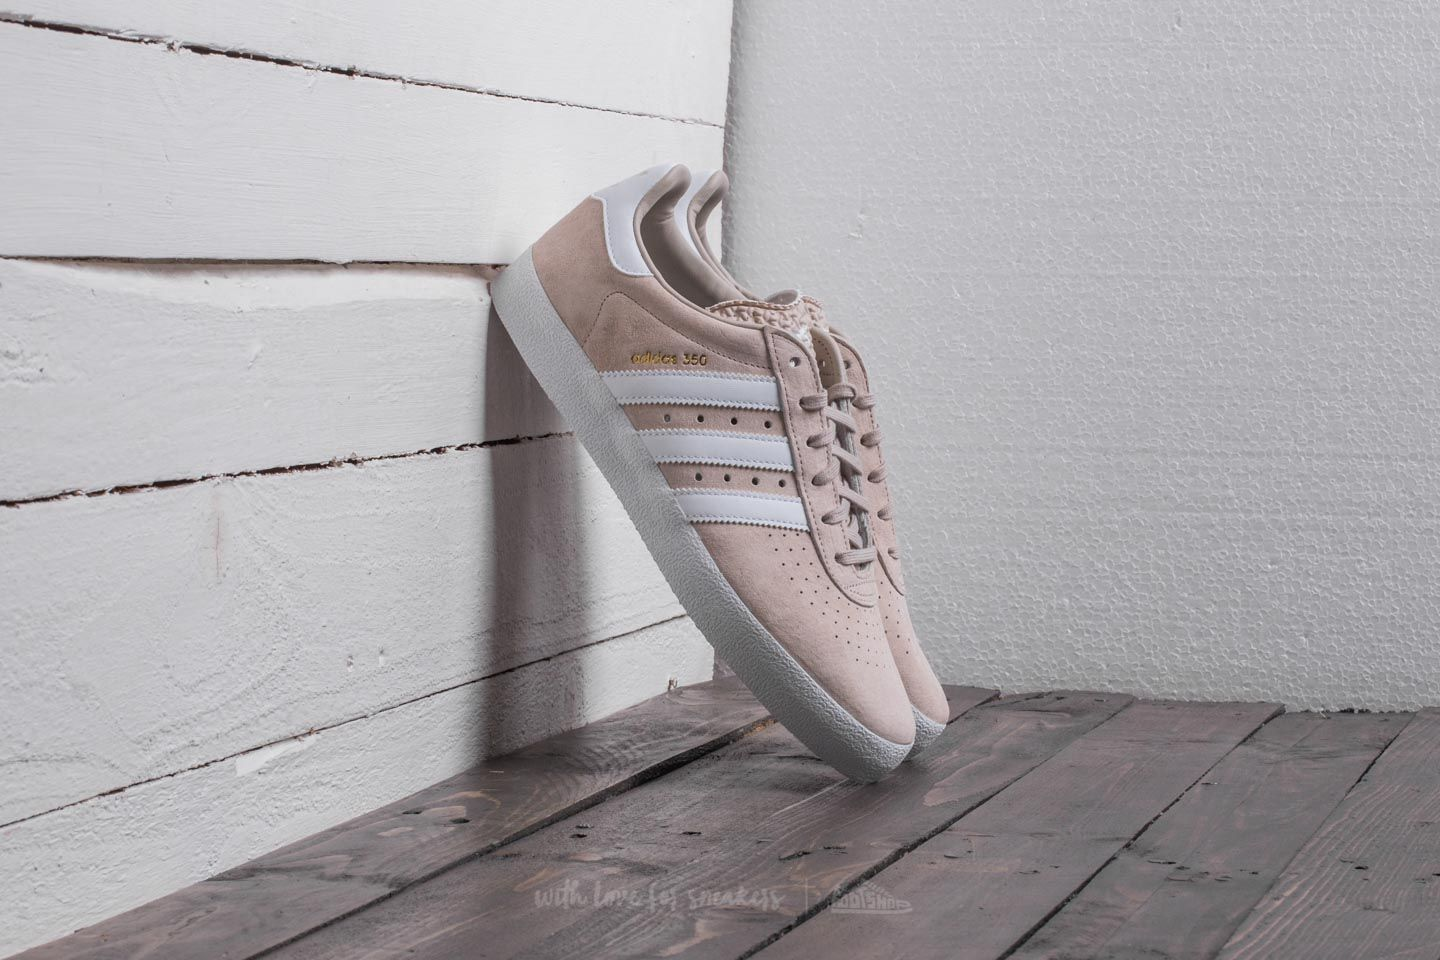 adidas 350 Clear Brown/ Ftw White/ Gold Metallic - 20614